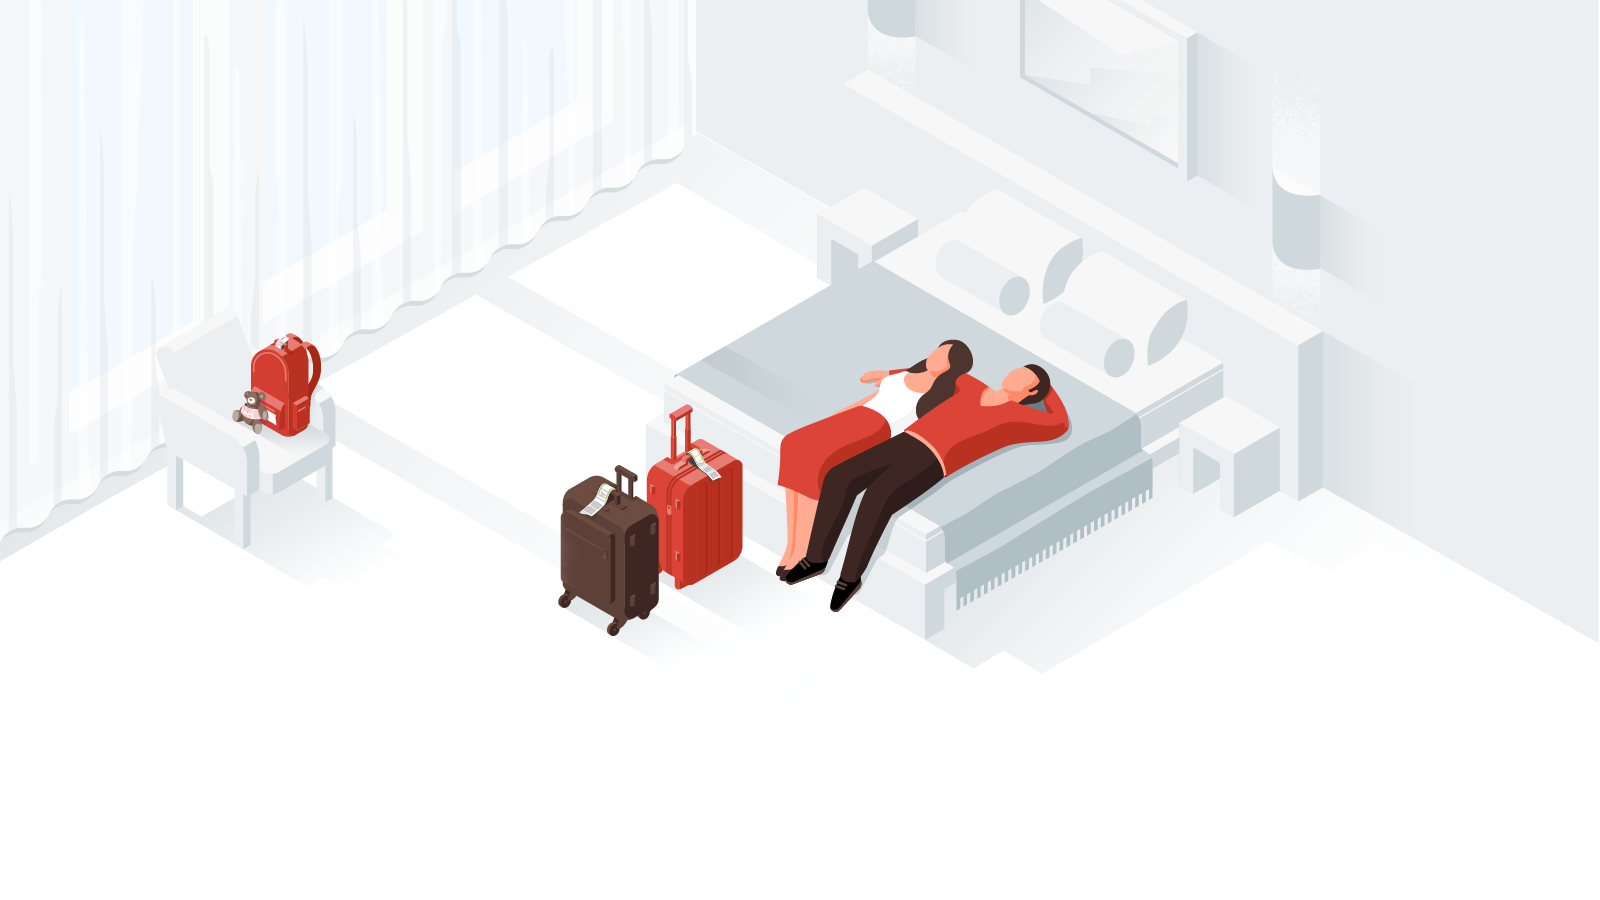 Illustrations for Google Hotel Reviews